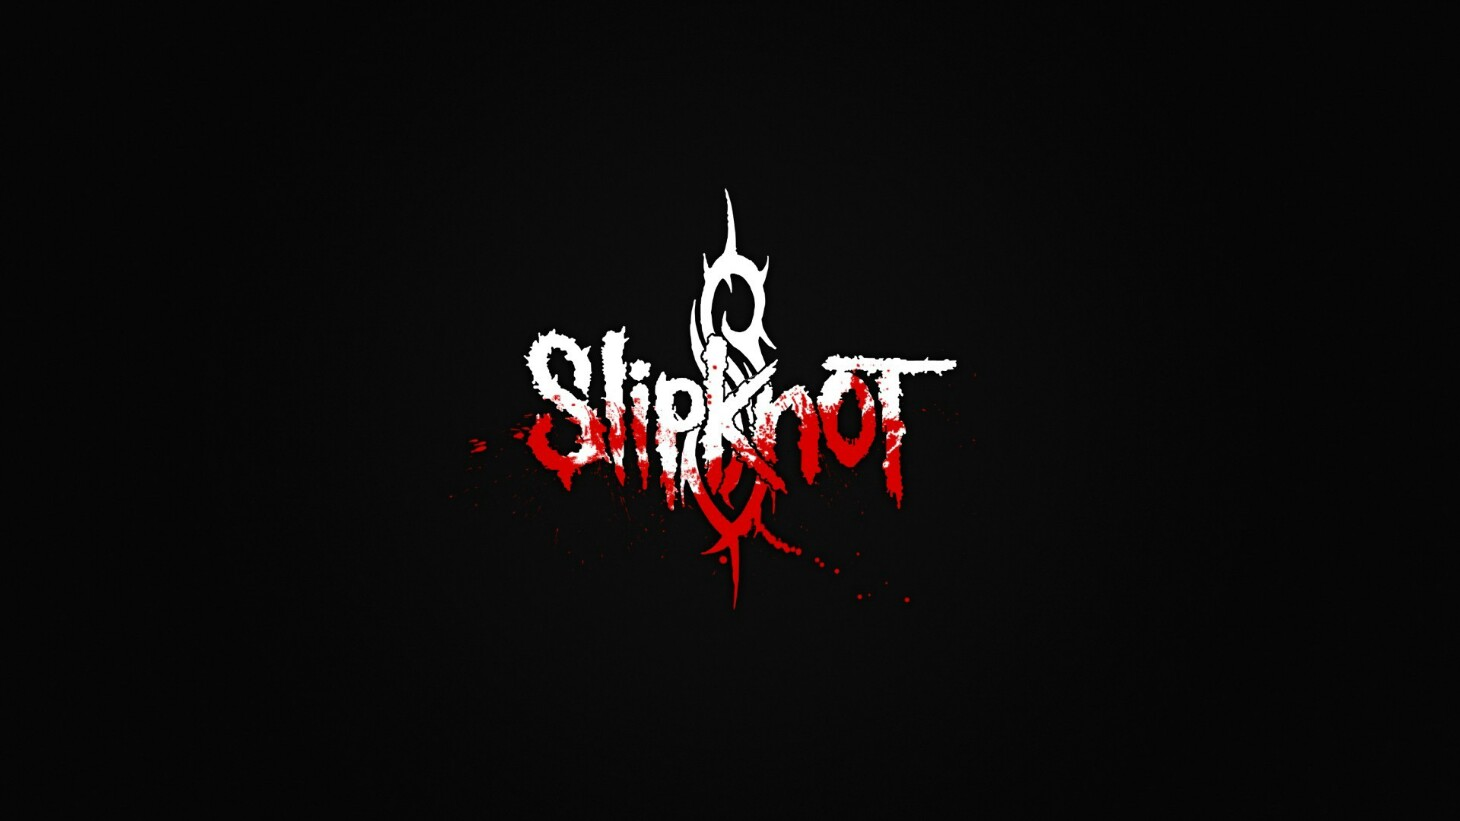 Slipknot Wallpapers HD A11